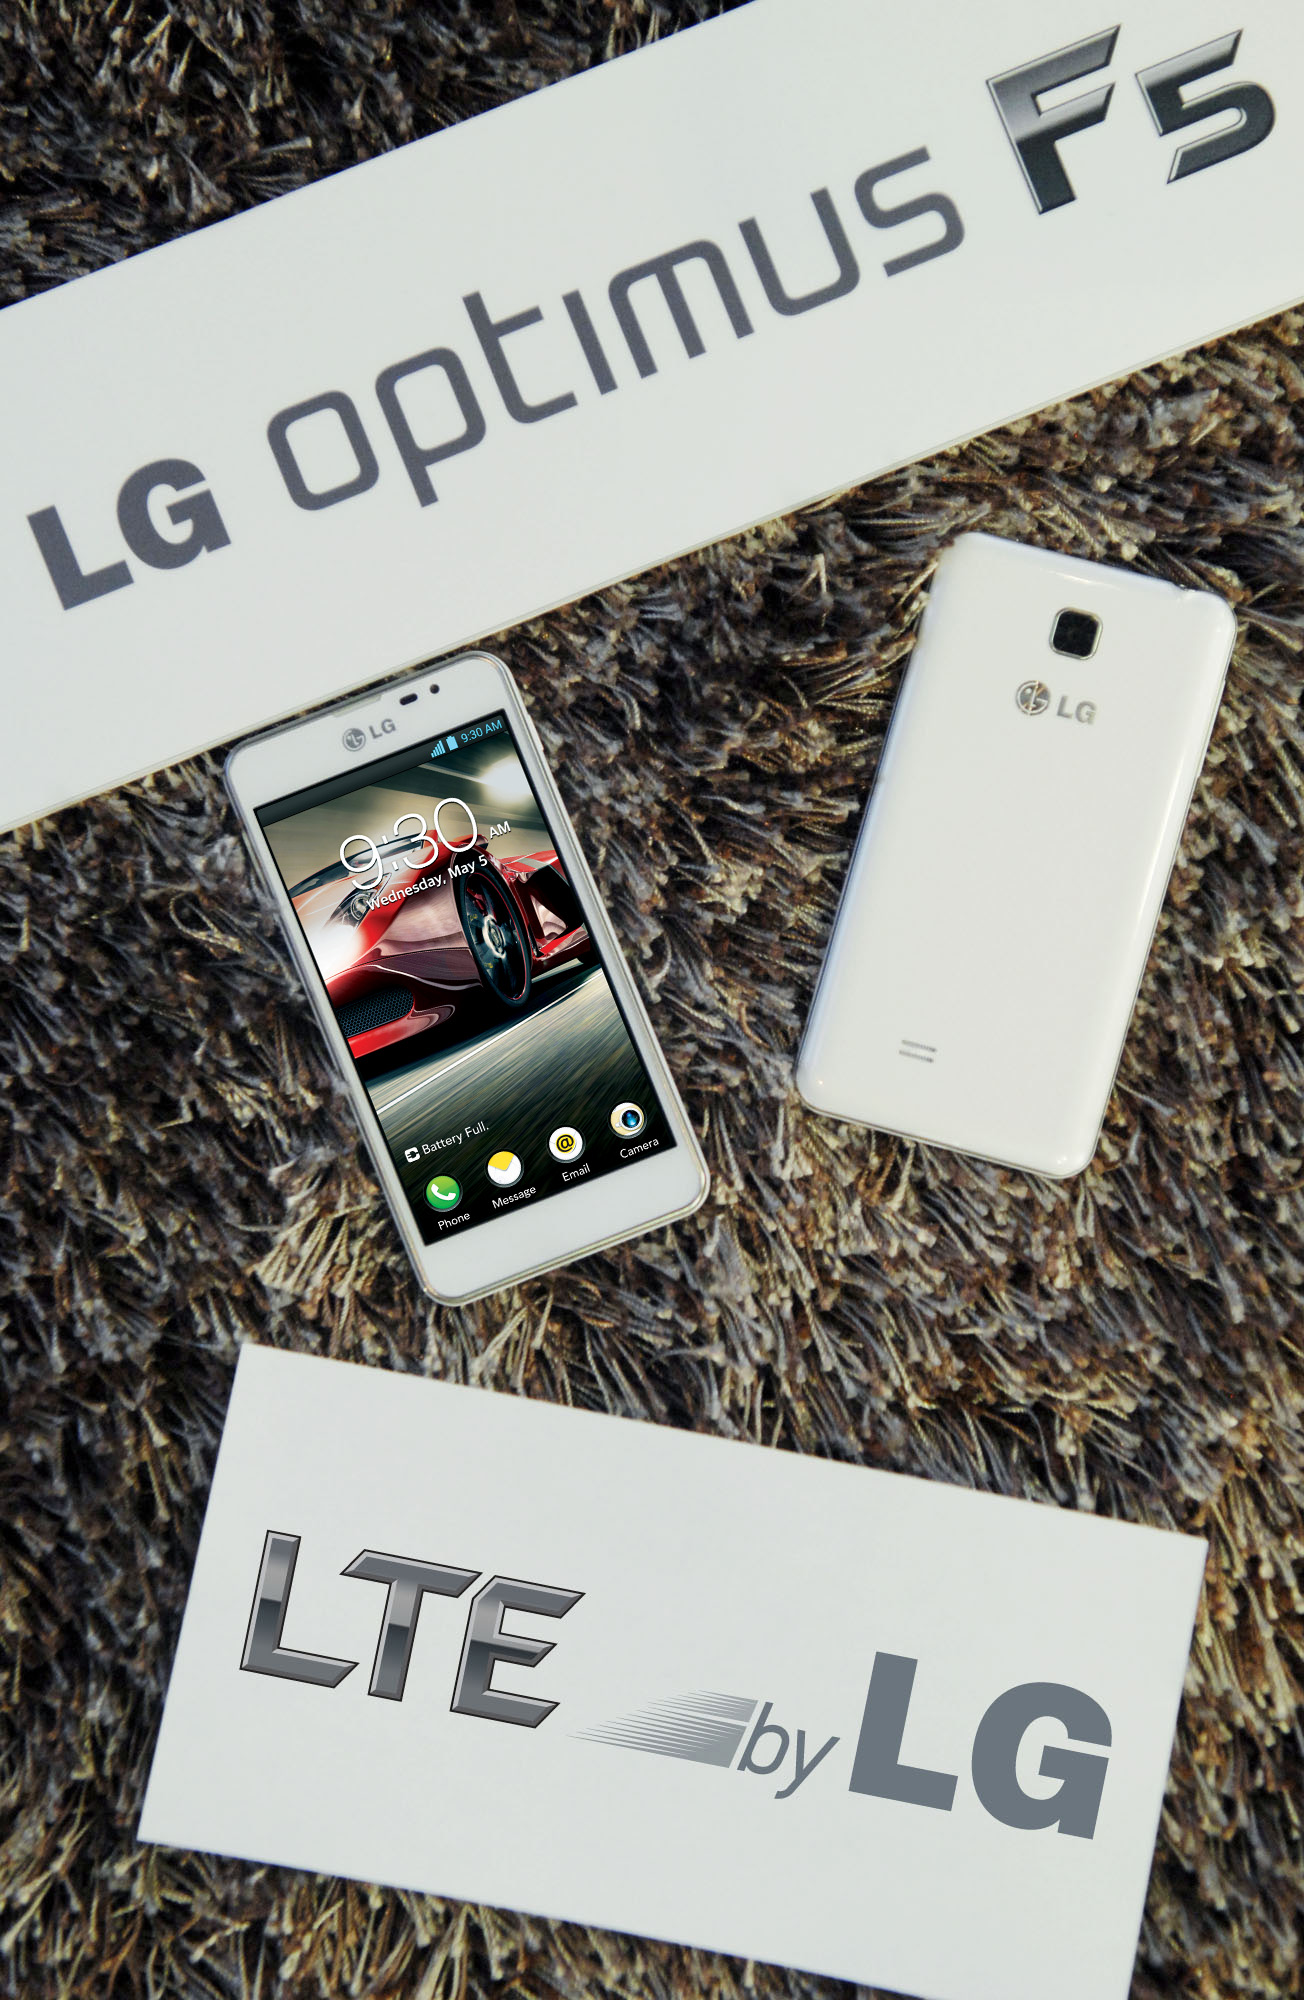 Two LG Optimus F5s on a carpet with panels saying 'LG Optimus F5' and 'LTE by LG' – one showing its front and the other one showing its back.